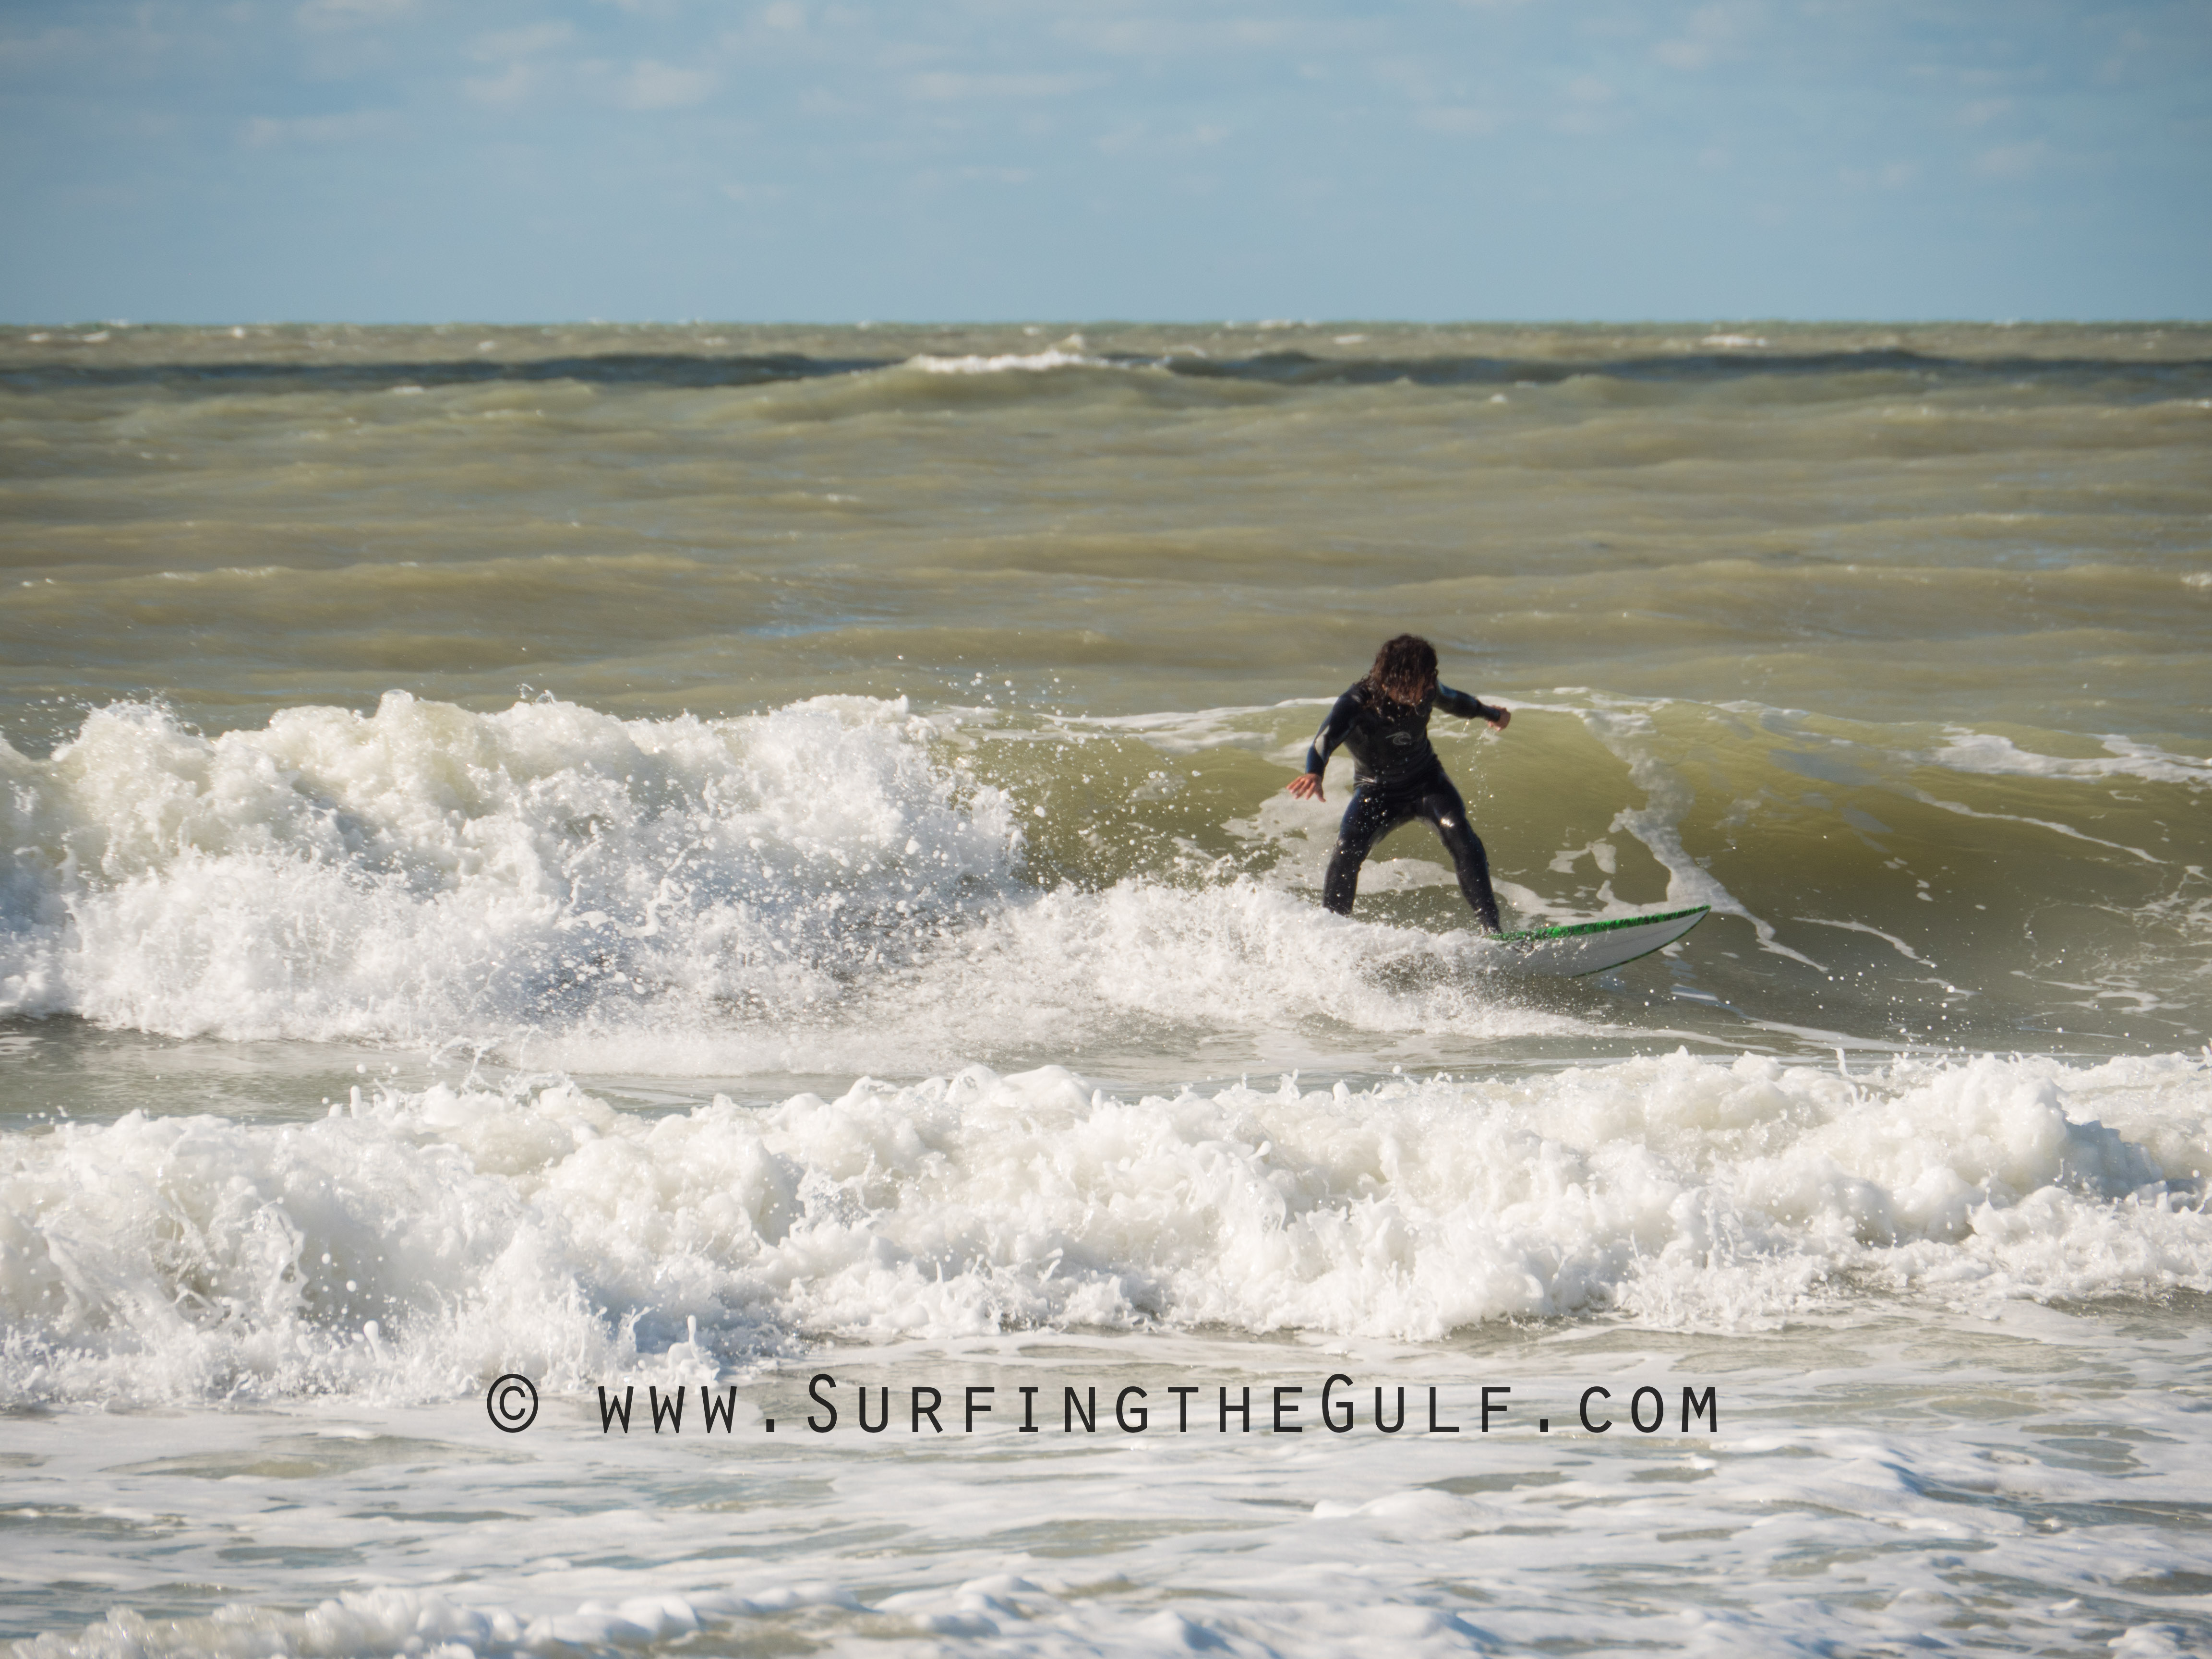 Sand key florida surfing gallery the first week of january www check out the surfs up surf reports from this day nvjuhfo Image collections